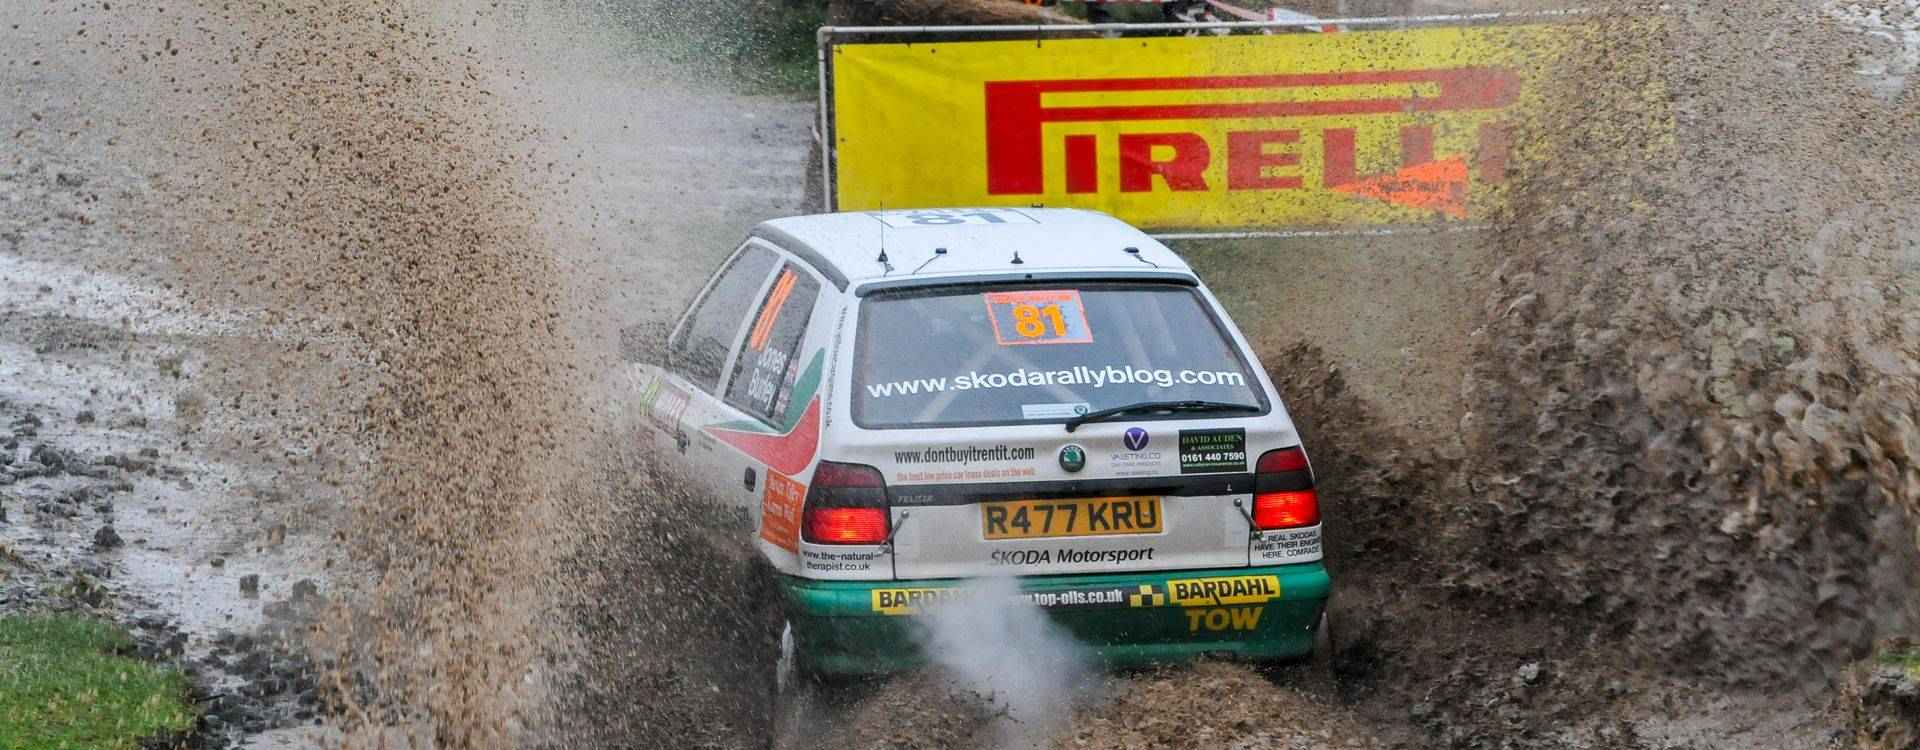 ŠKODA and the British Rally: The successful story